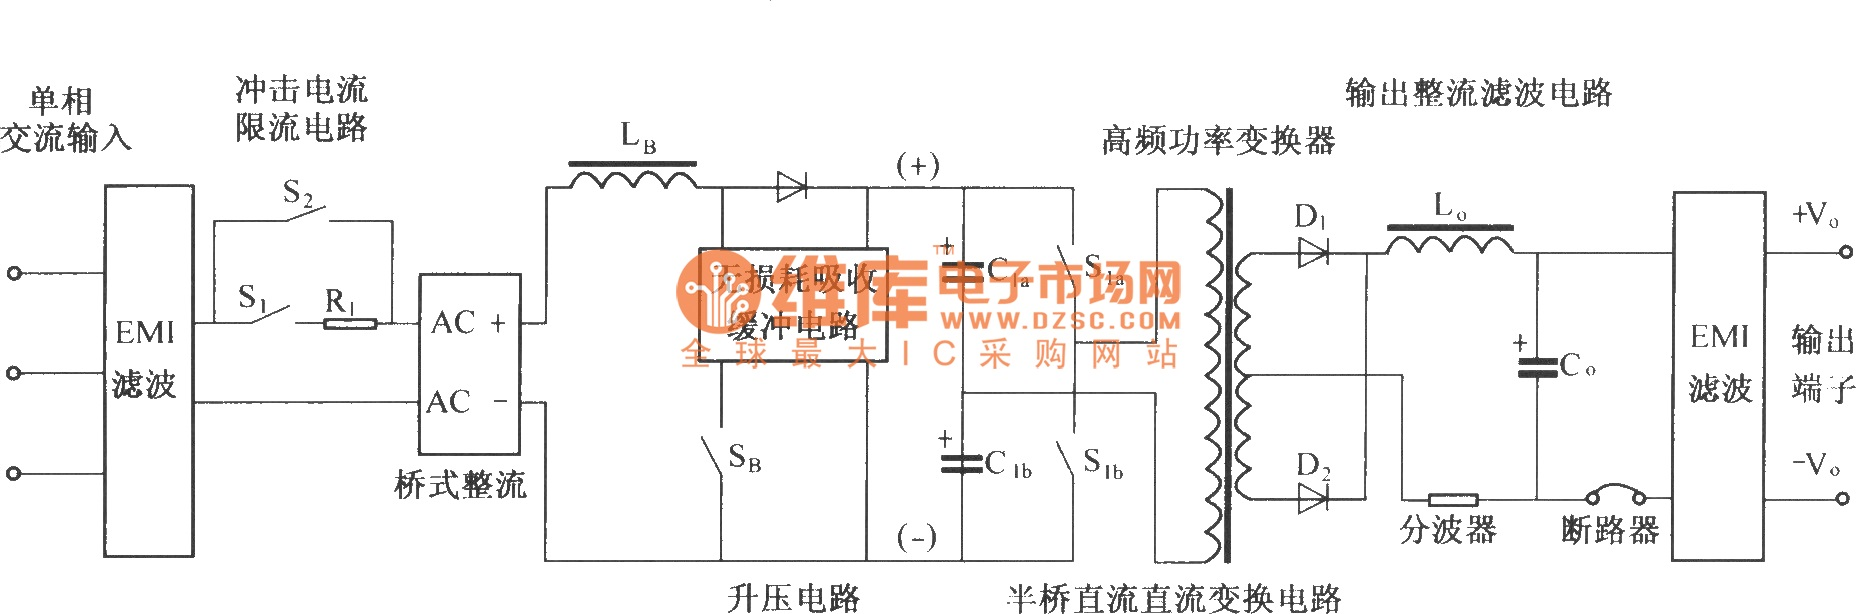 hight resolution of emi wiring diagram wiring diagram third level chopper wiring diagram diagram emi wiring shc18de0000aa0a electrical wiring